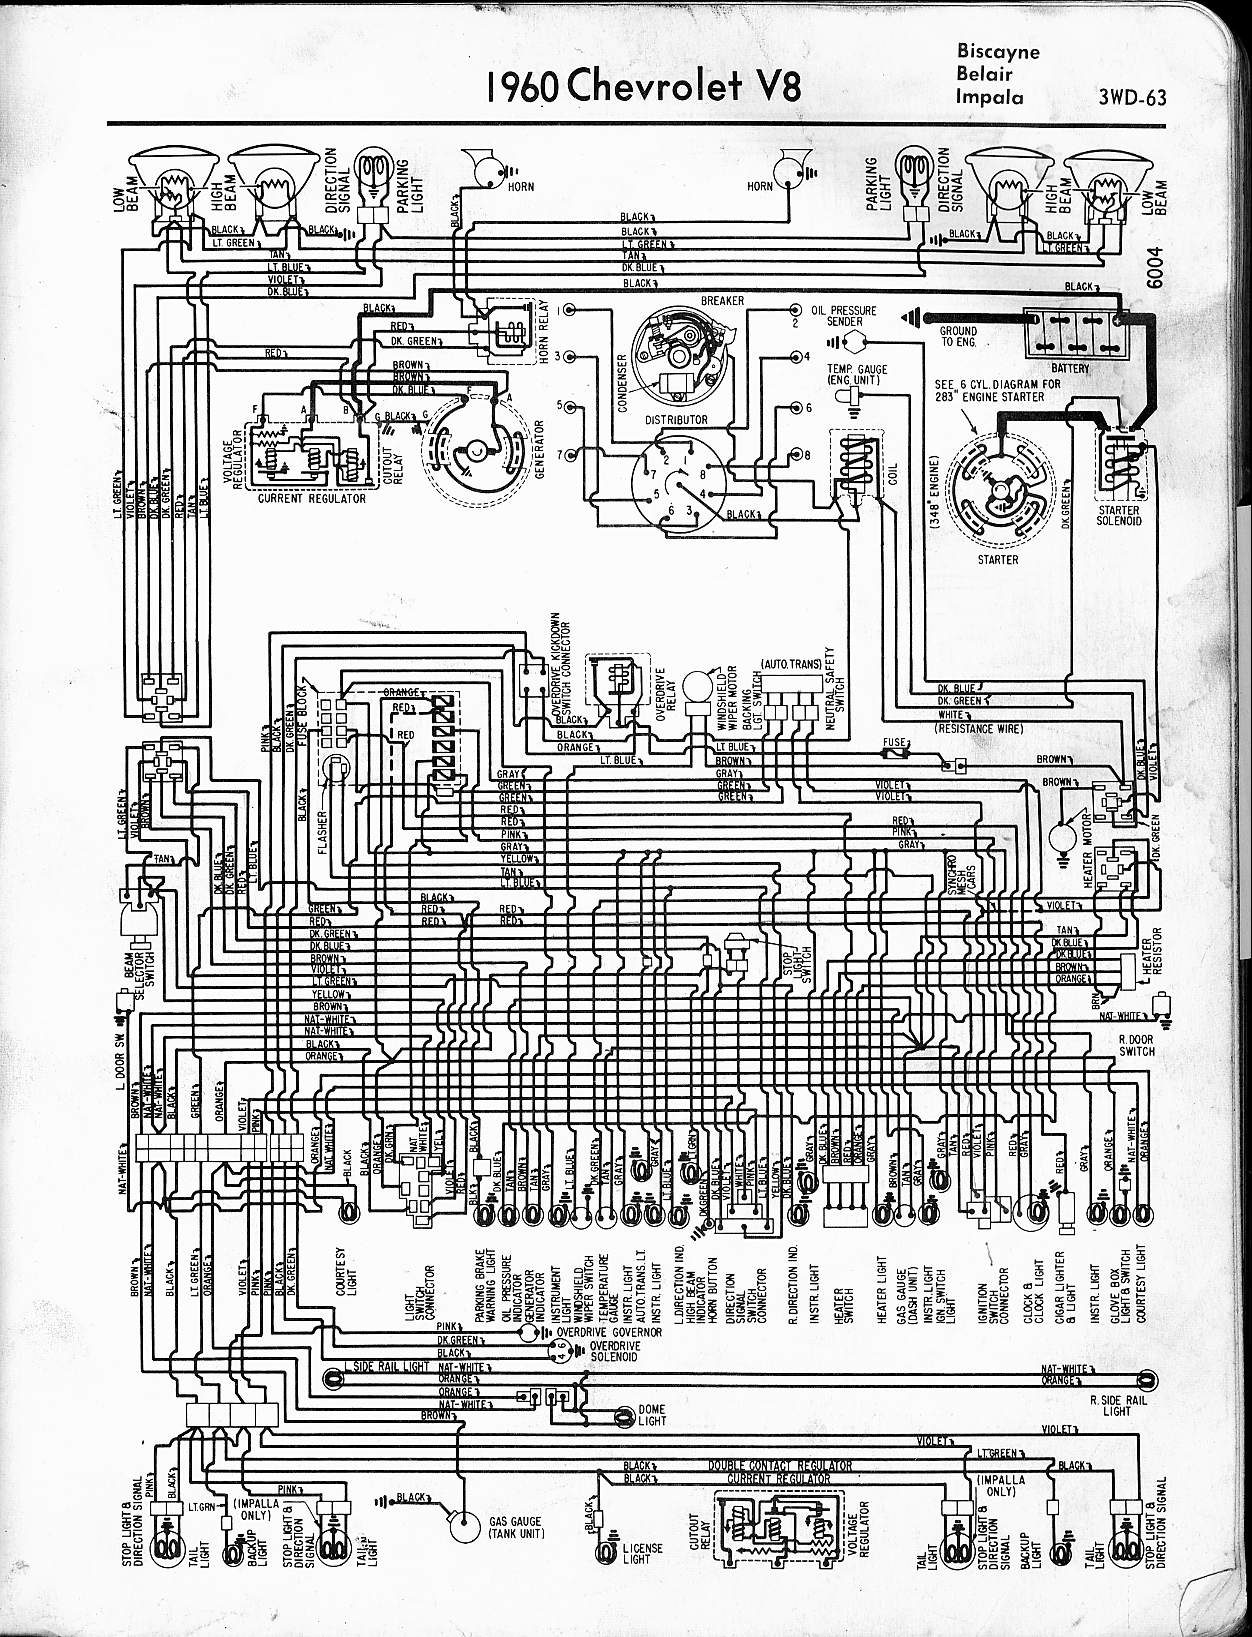 1971 Camaro Wiring Diagram